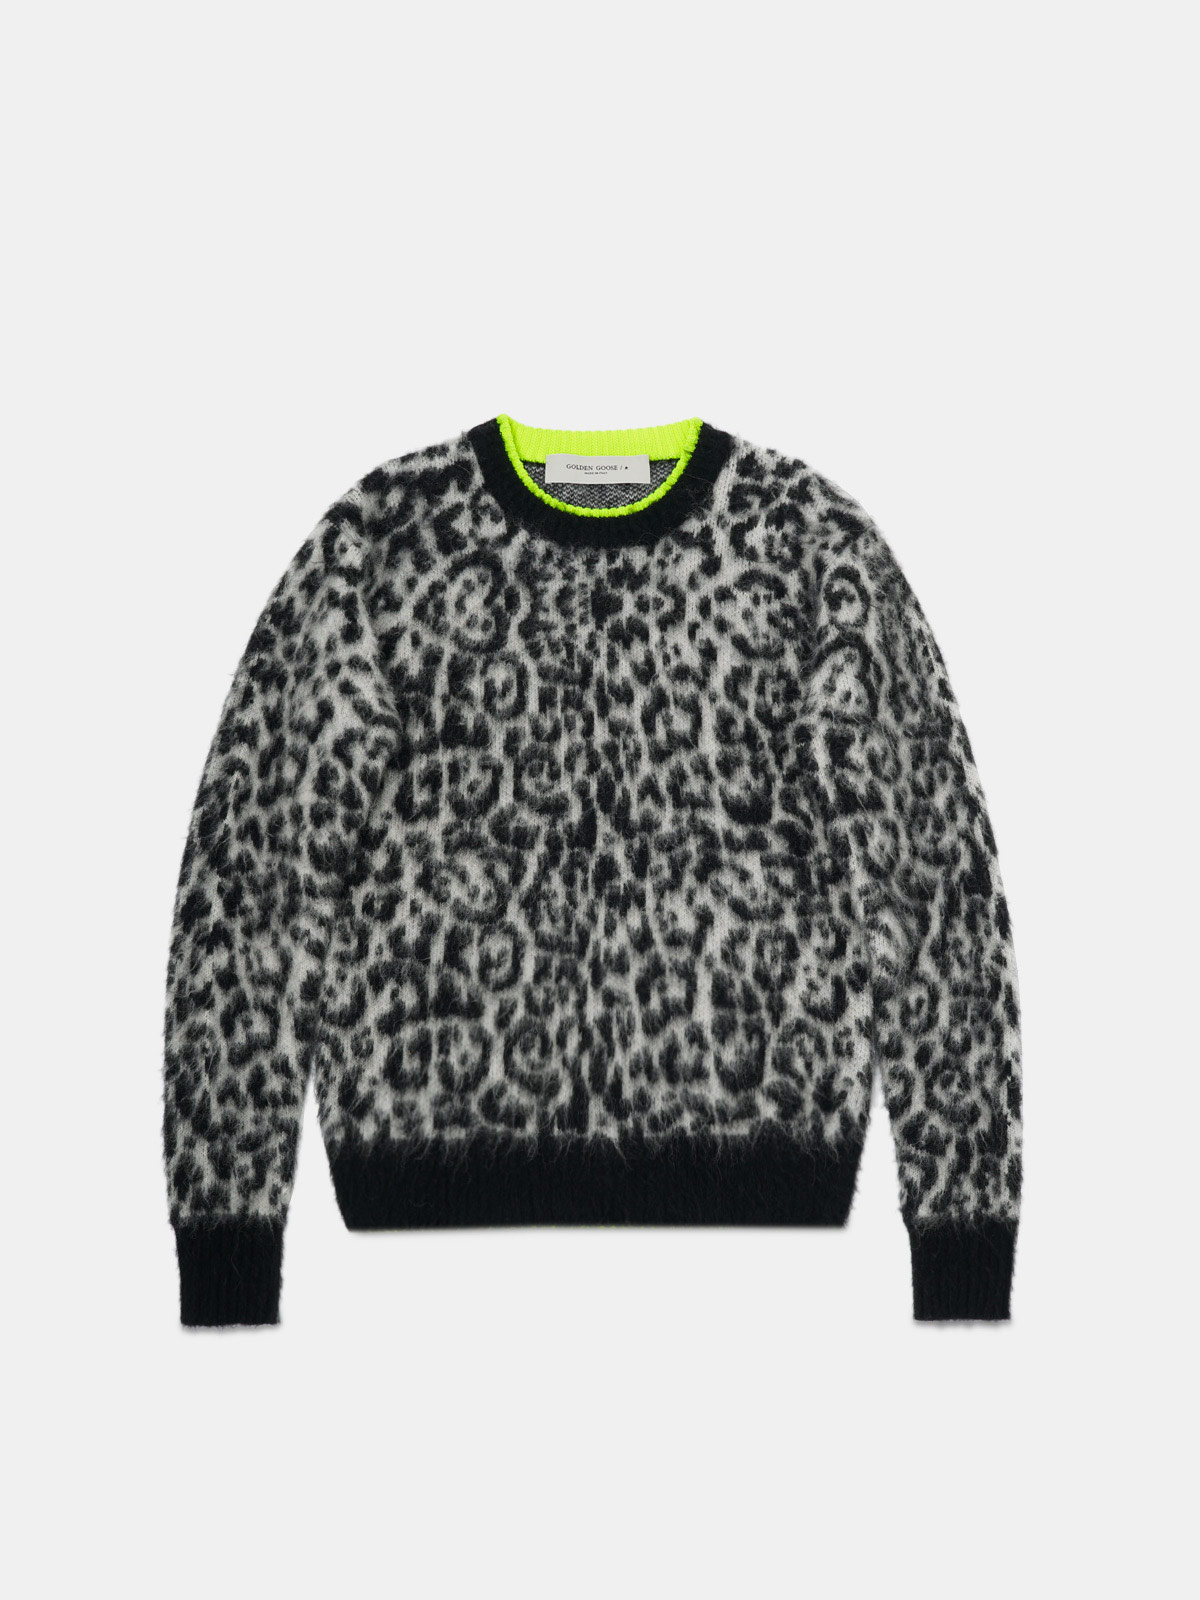 Golden Goose - Andreina pullover with leopard pattern   in